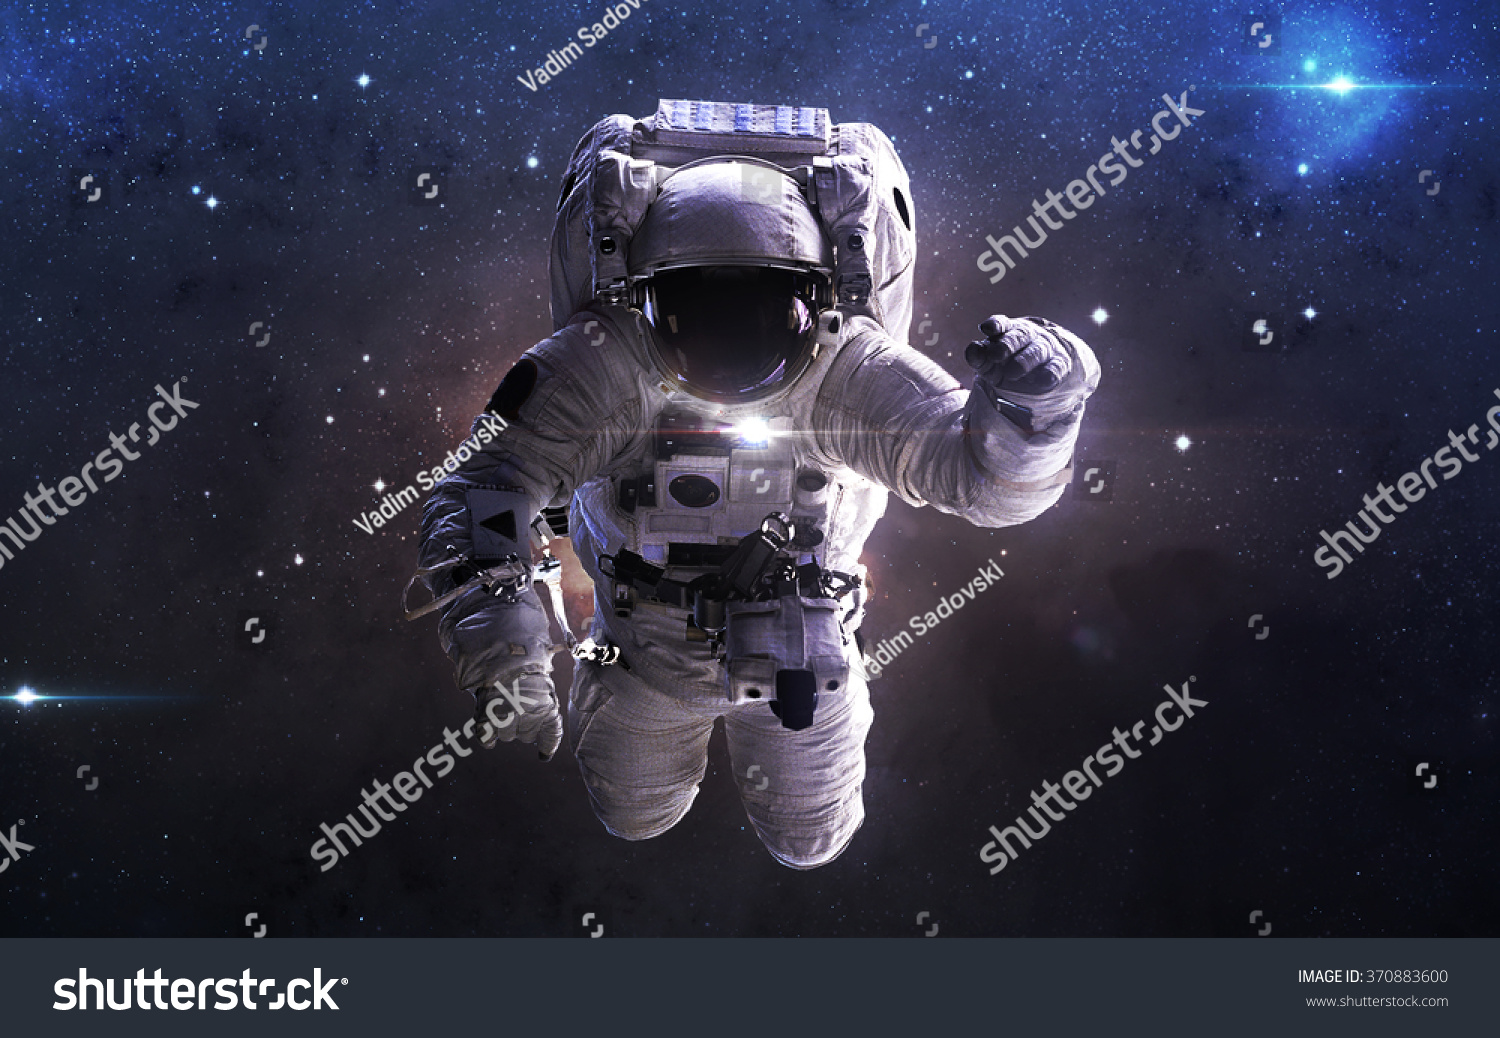 Astronaut in outer space this image elements furnished by for Outer space elements